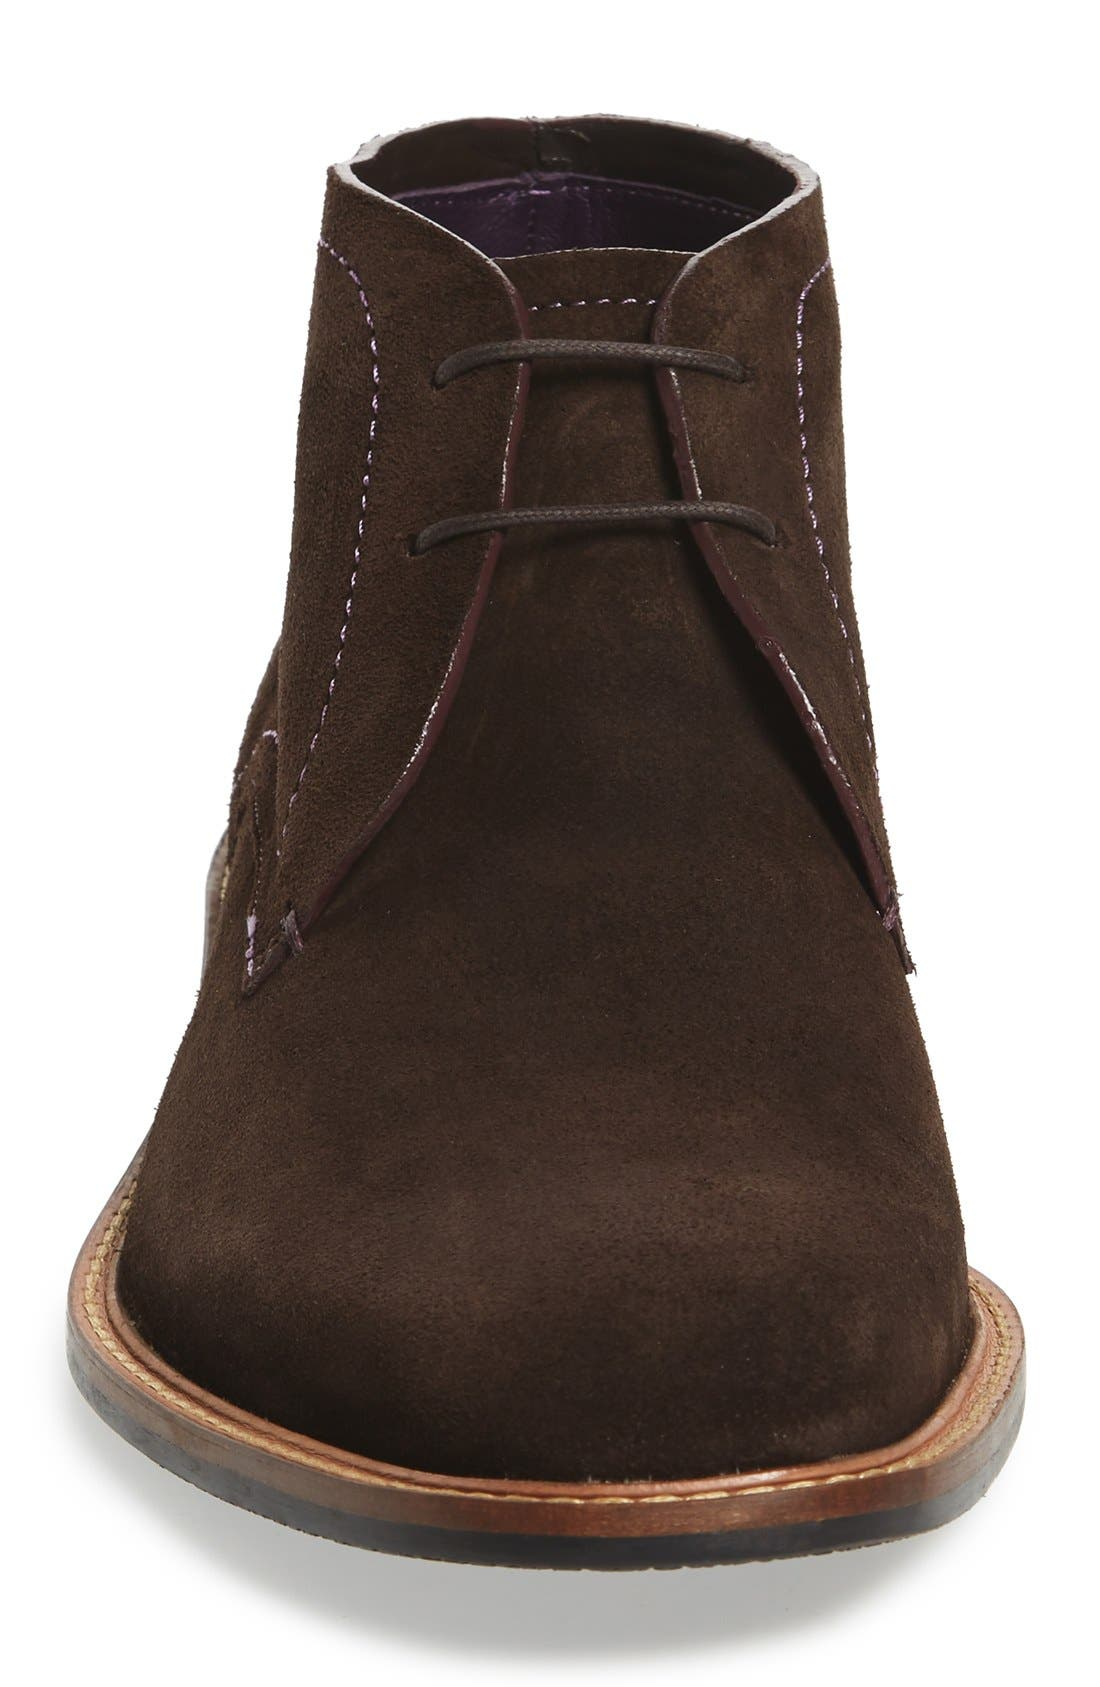 'Torsdi 4' Chukka Boot,                             Alternate thumbnail 16, color,